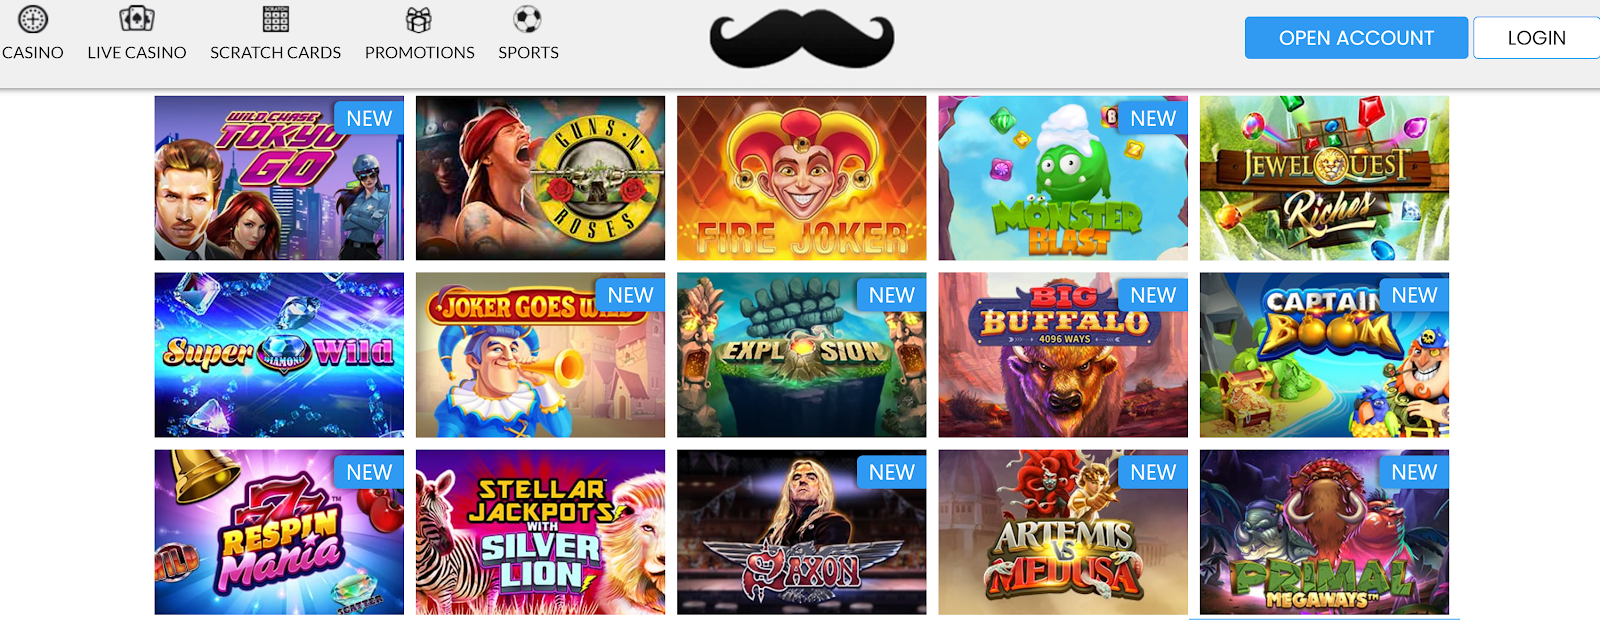 mr.play Casino is the best 200% casino bonus site for slots